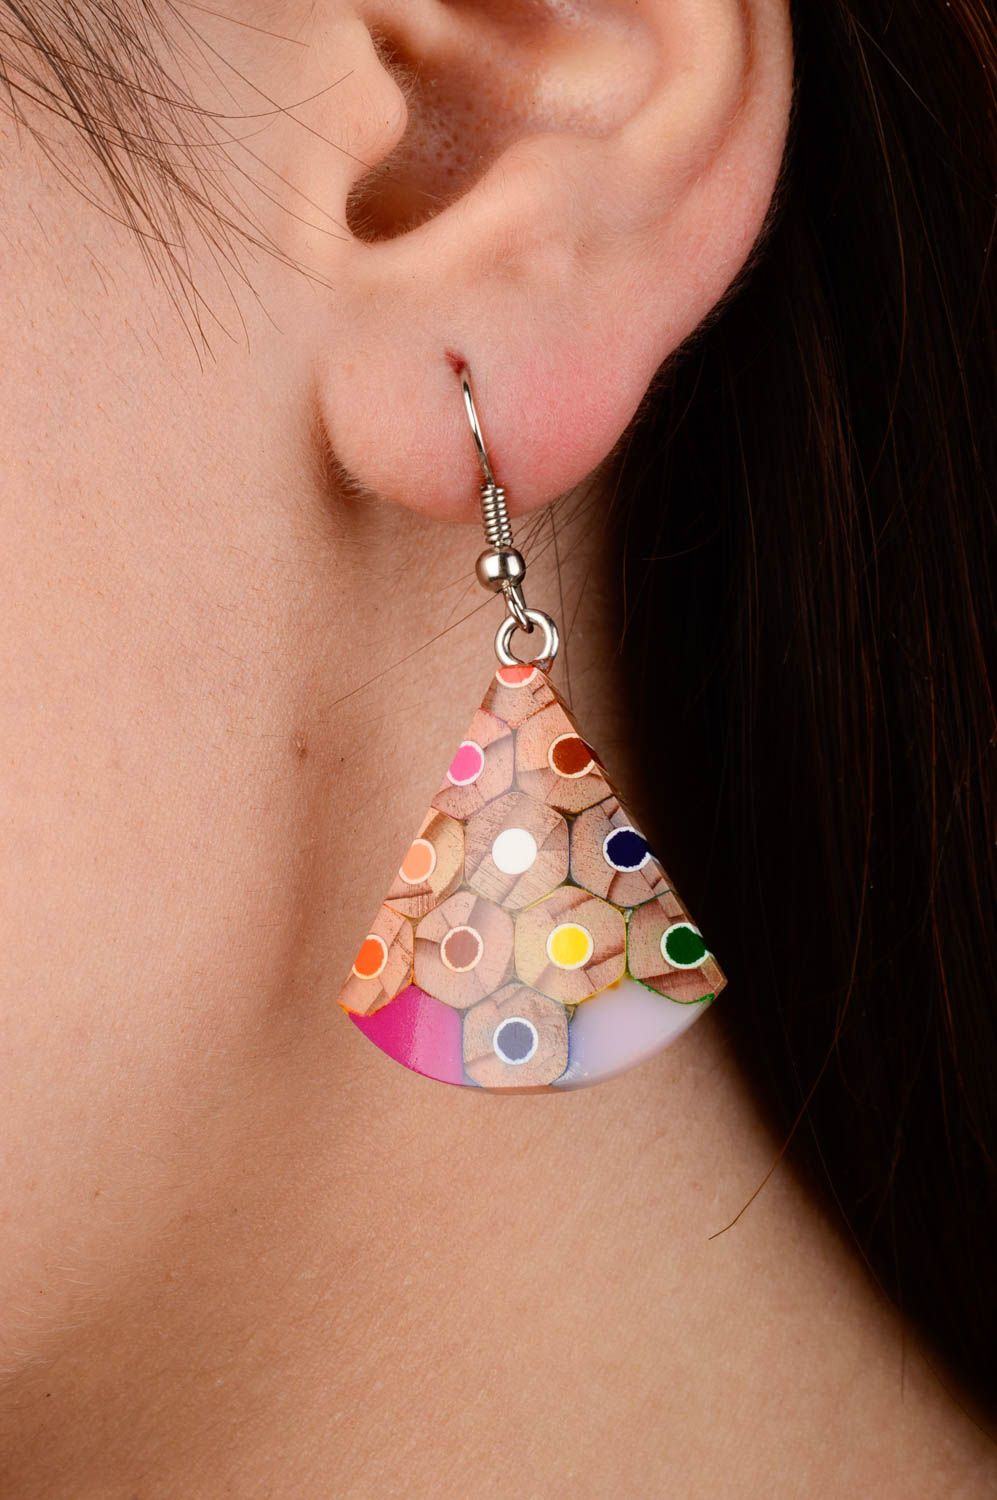 Wooden designer earrings handmade earrings with charms stylish accessories  photo 2